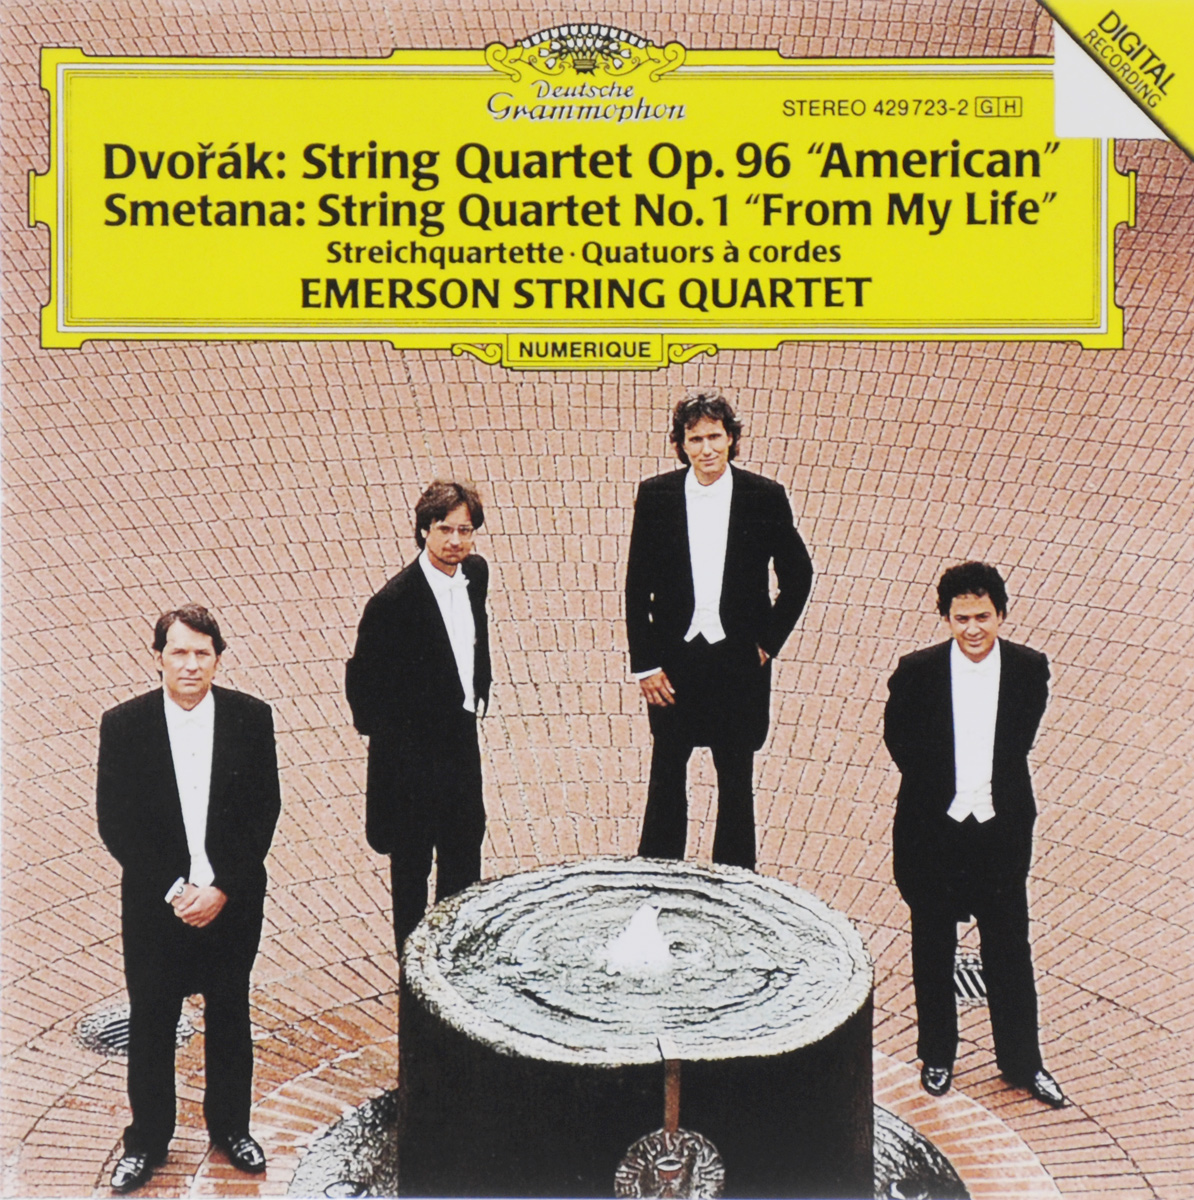 Emerson String Quartet Emerson String Quartet. String Quartet Op. 96 American / String Quartet No. 1 From My Life игра zapf creation baby born памперсы 815 816